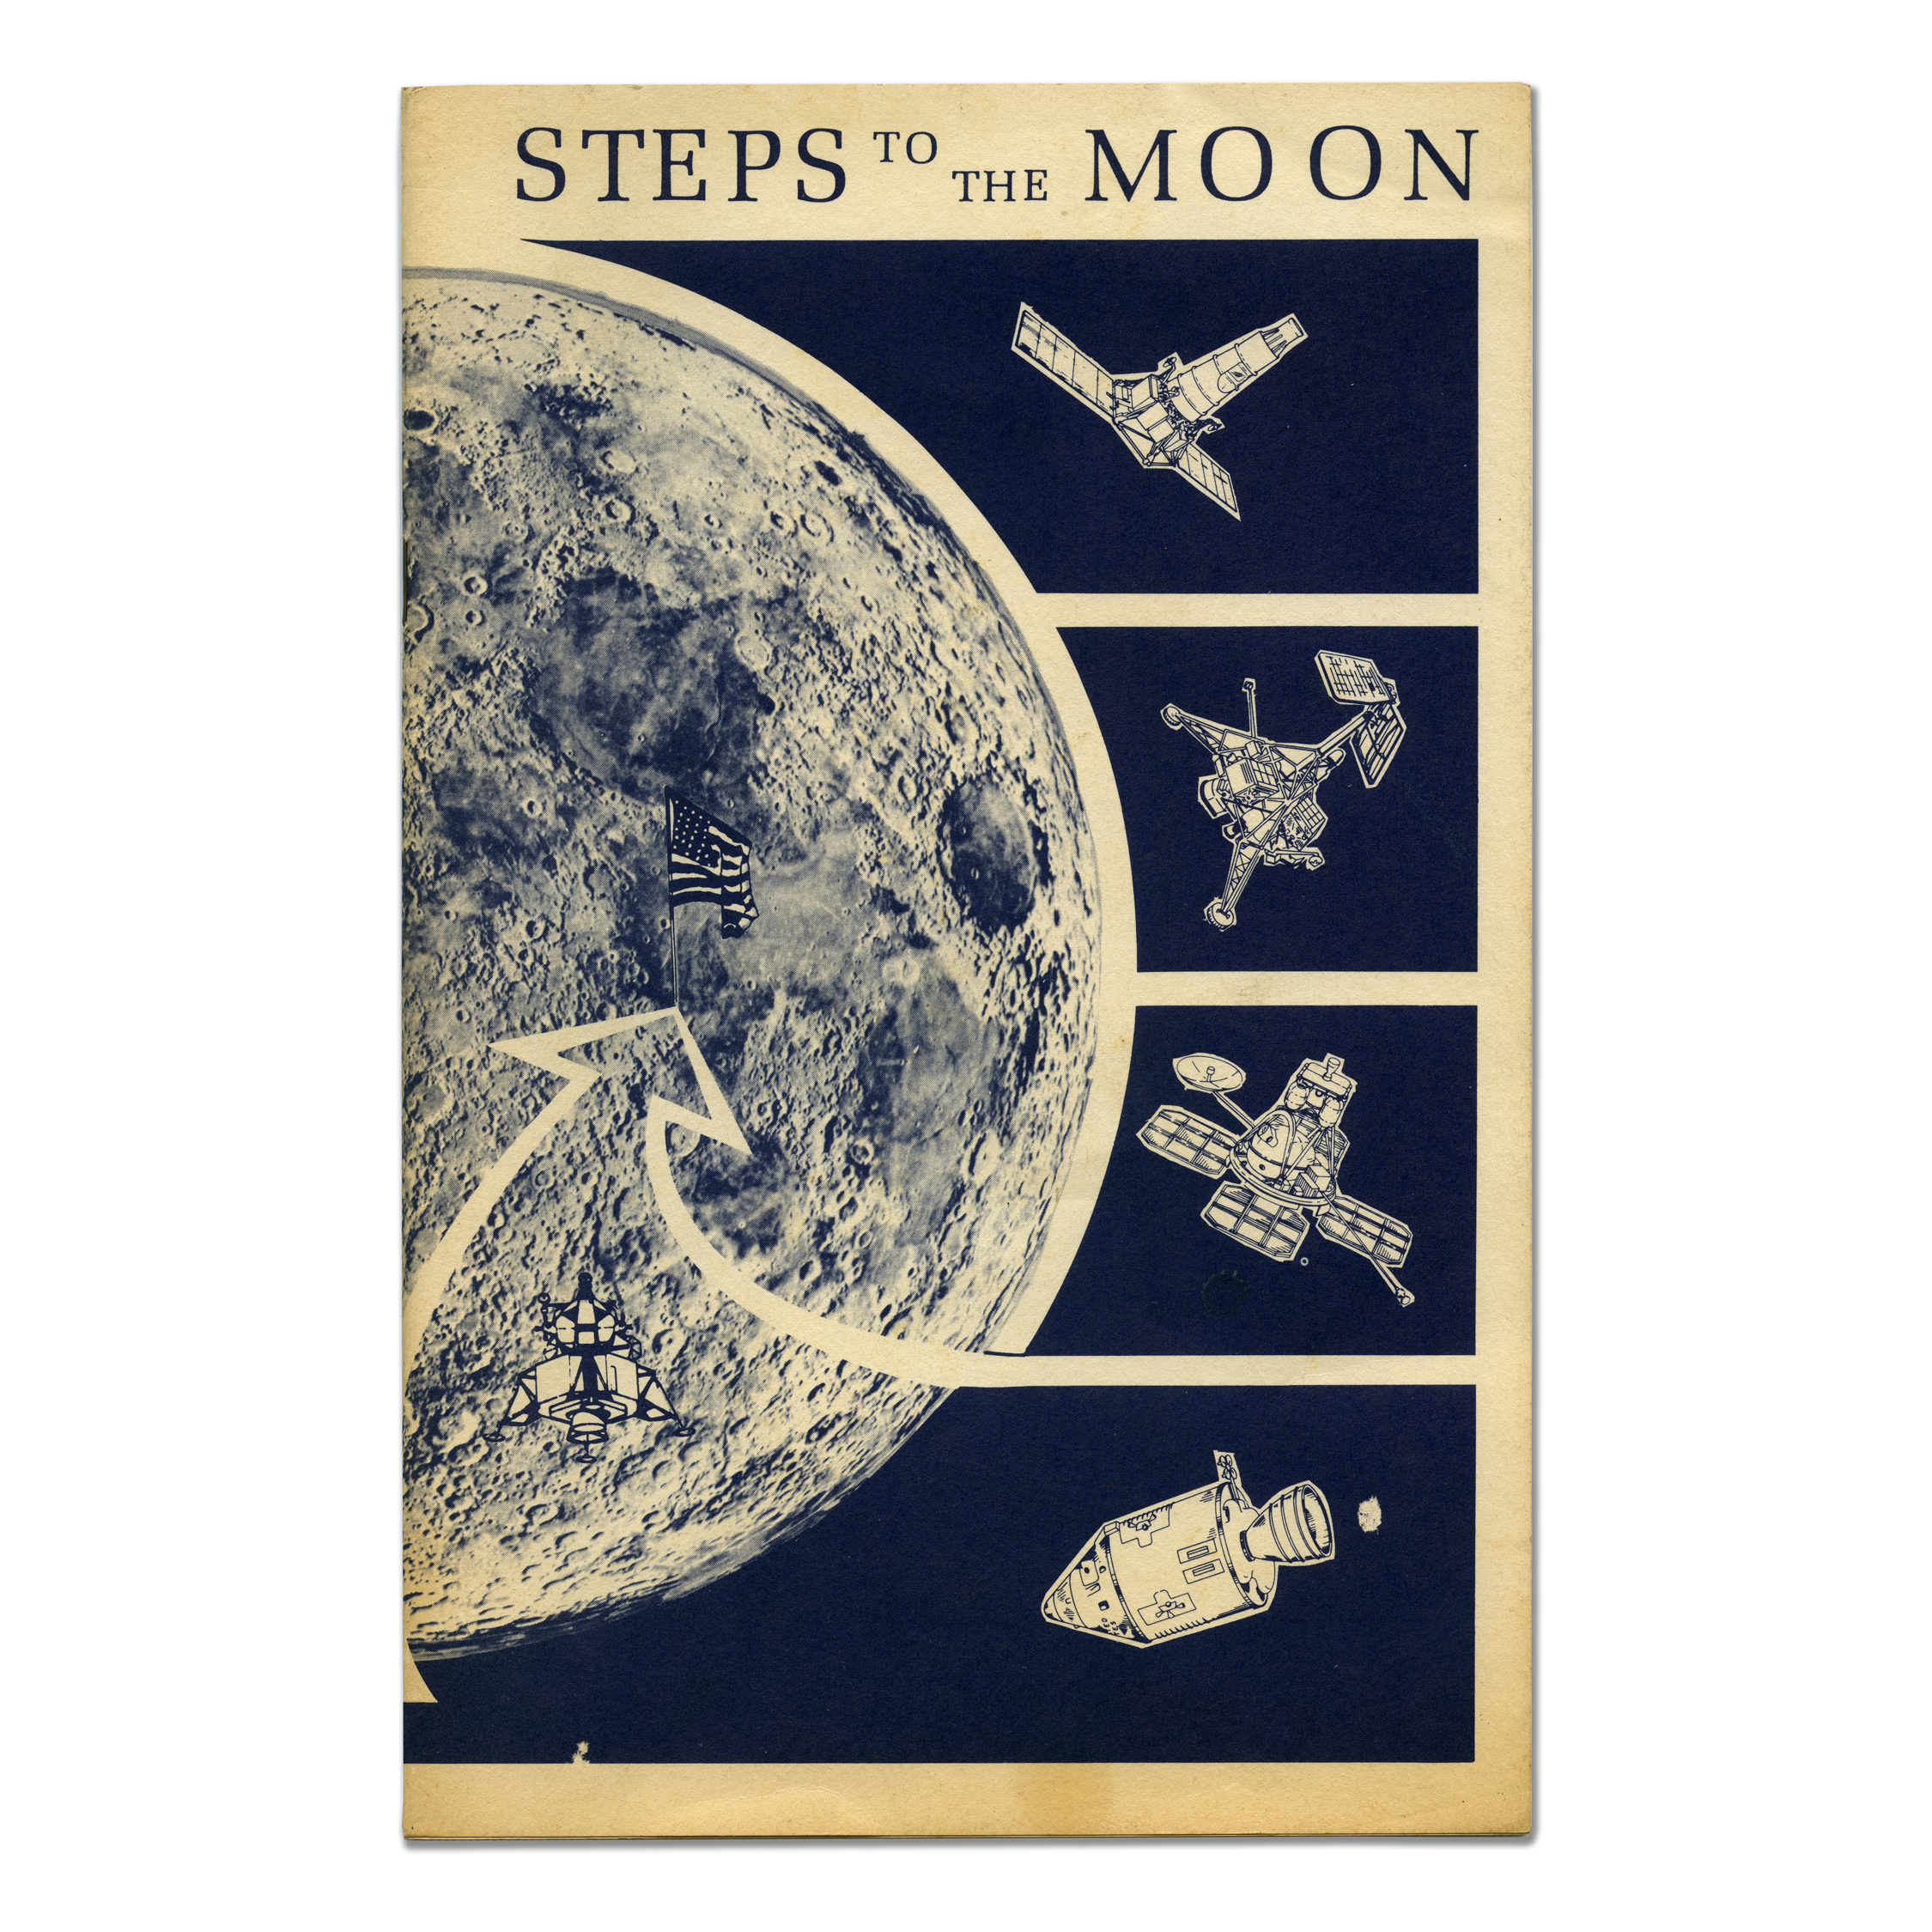 1972_steps_to_the_moon_brochure.jpg